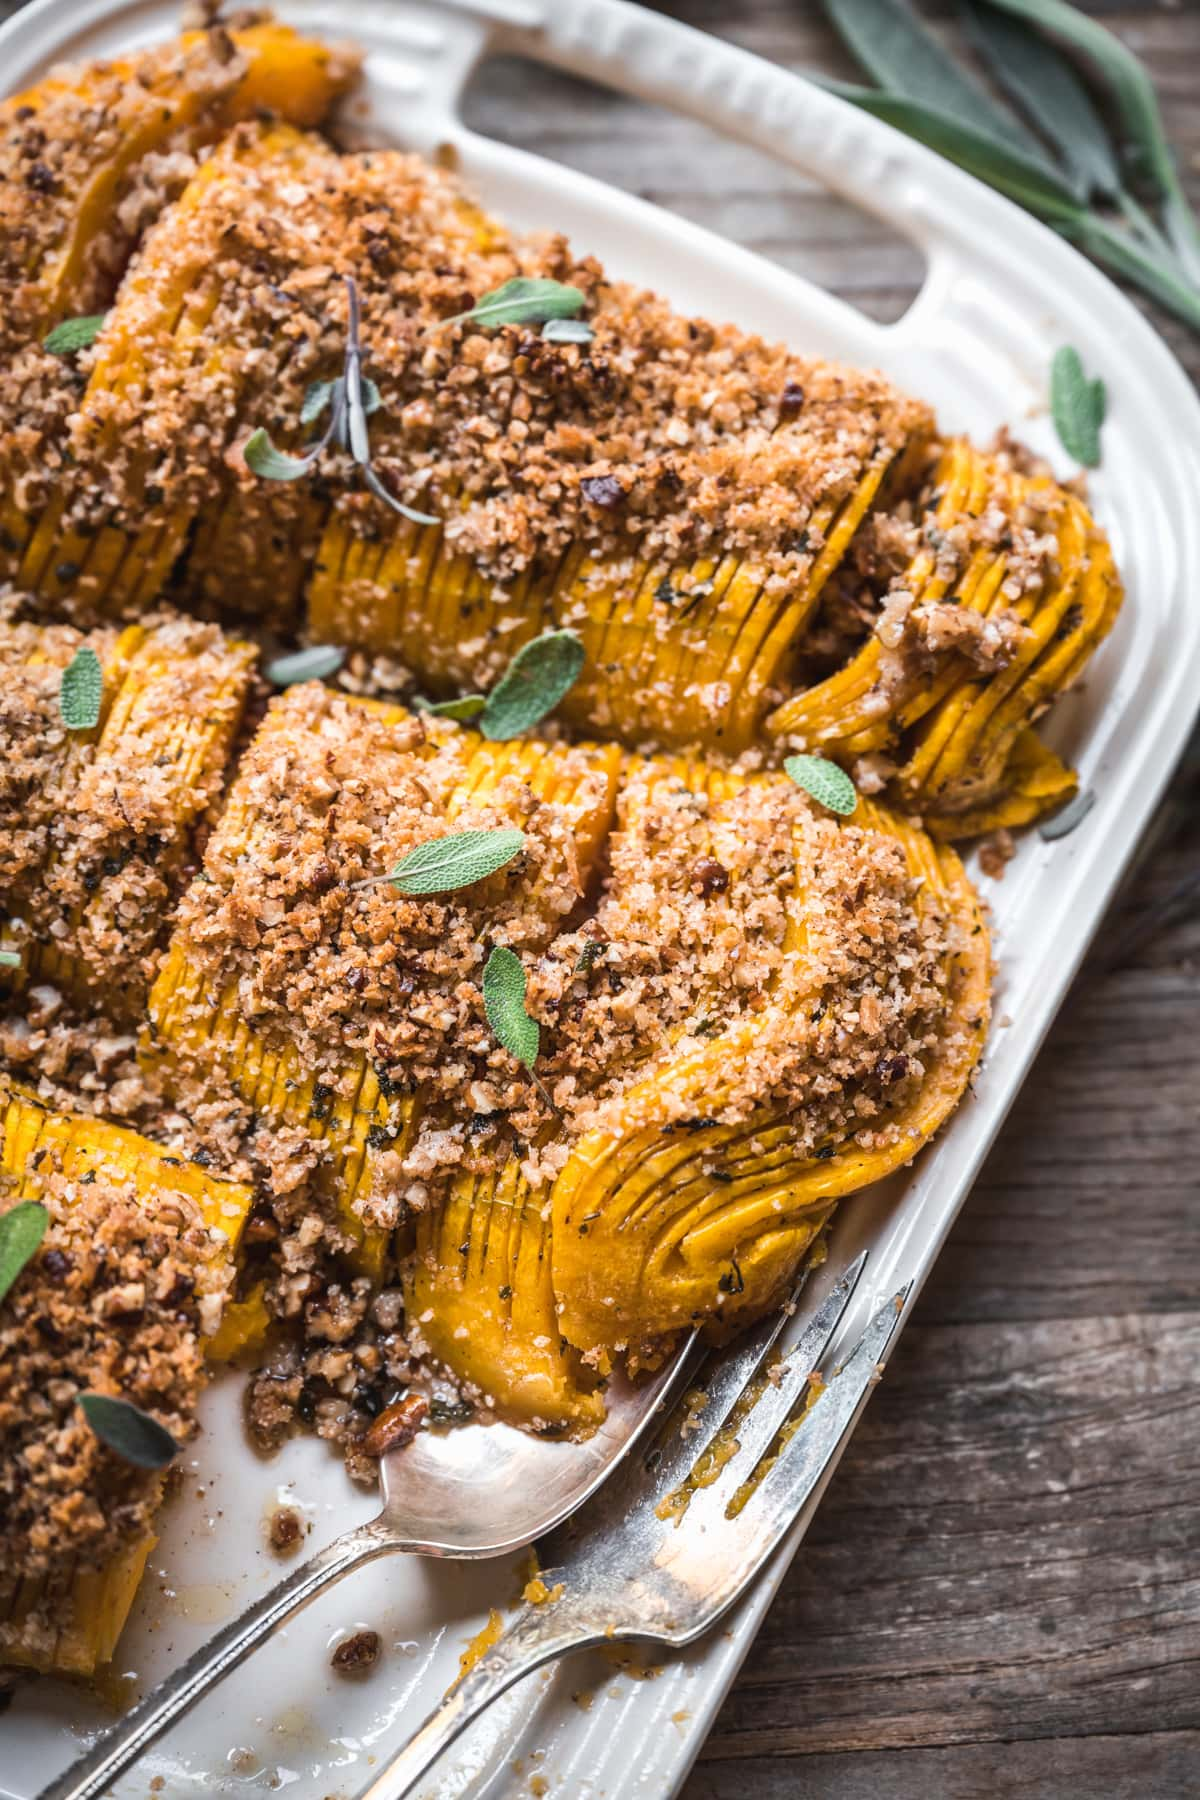 close up view of vegan hasselback butternut squash with breadcrumbs.